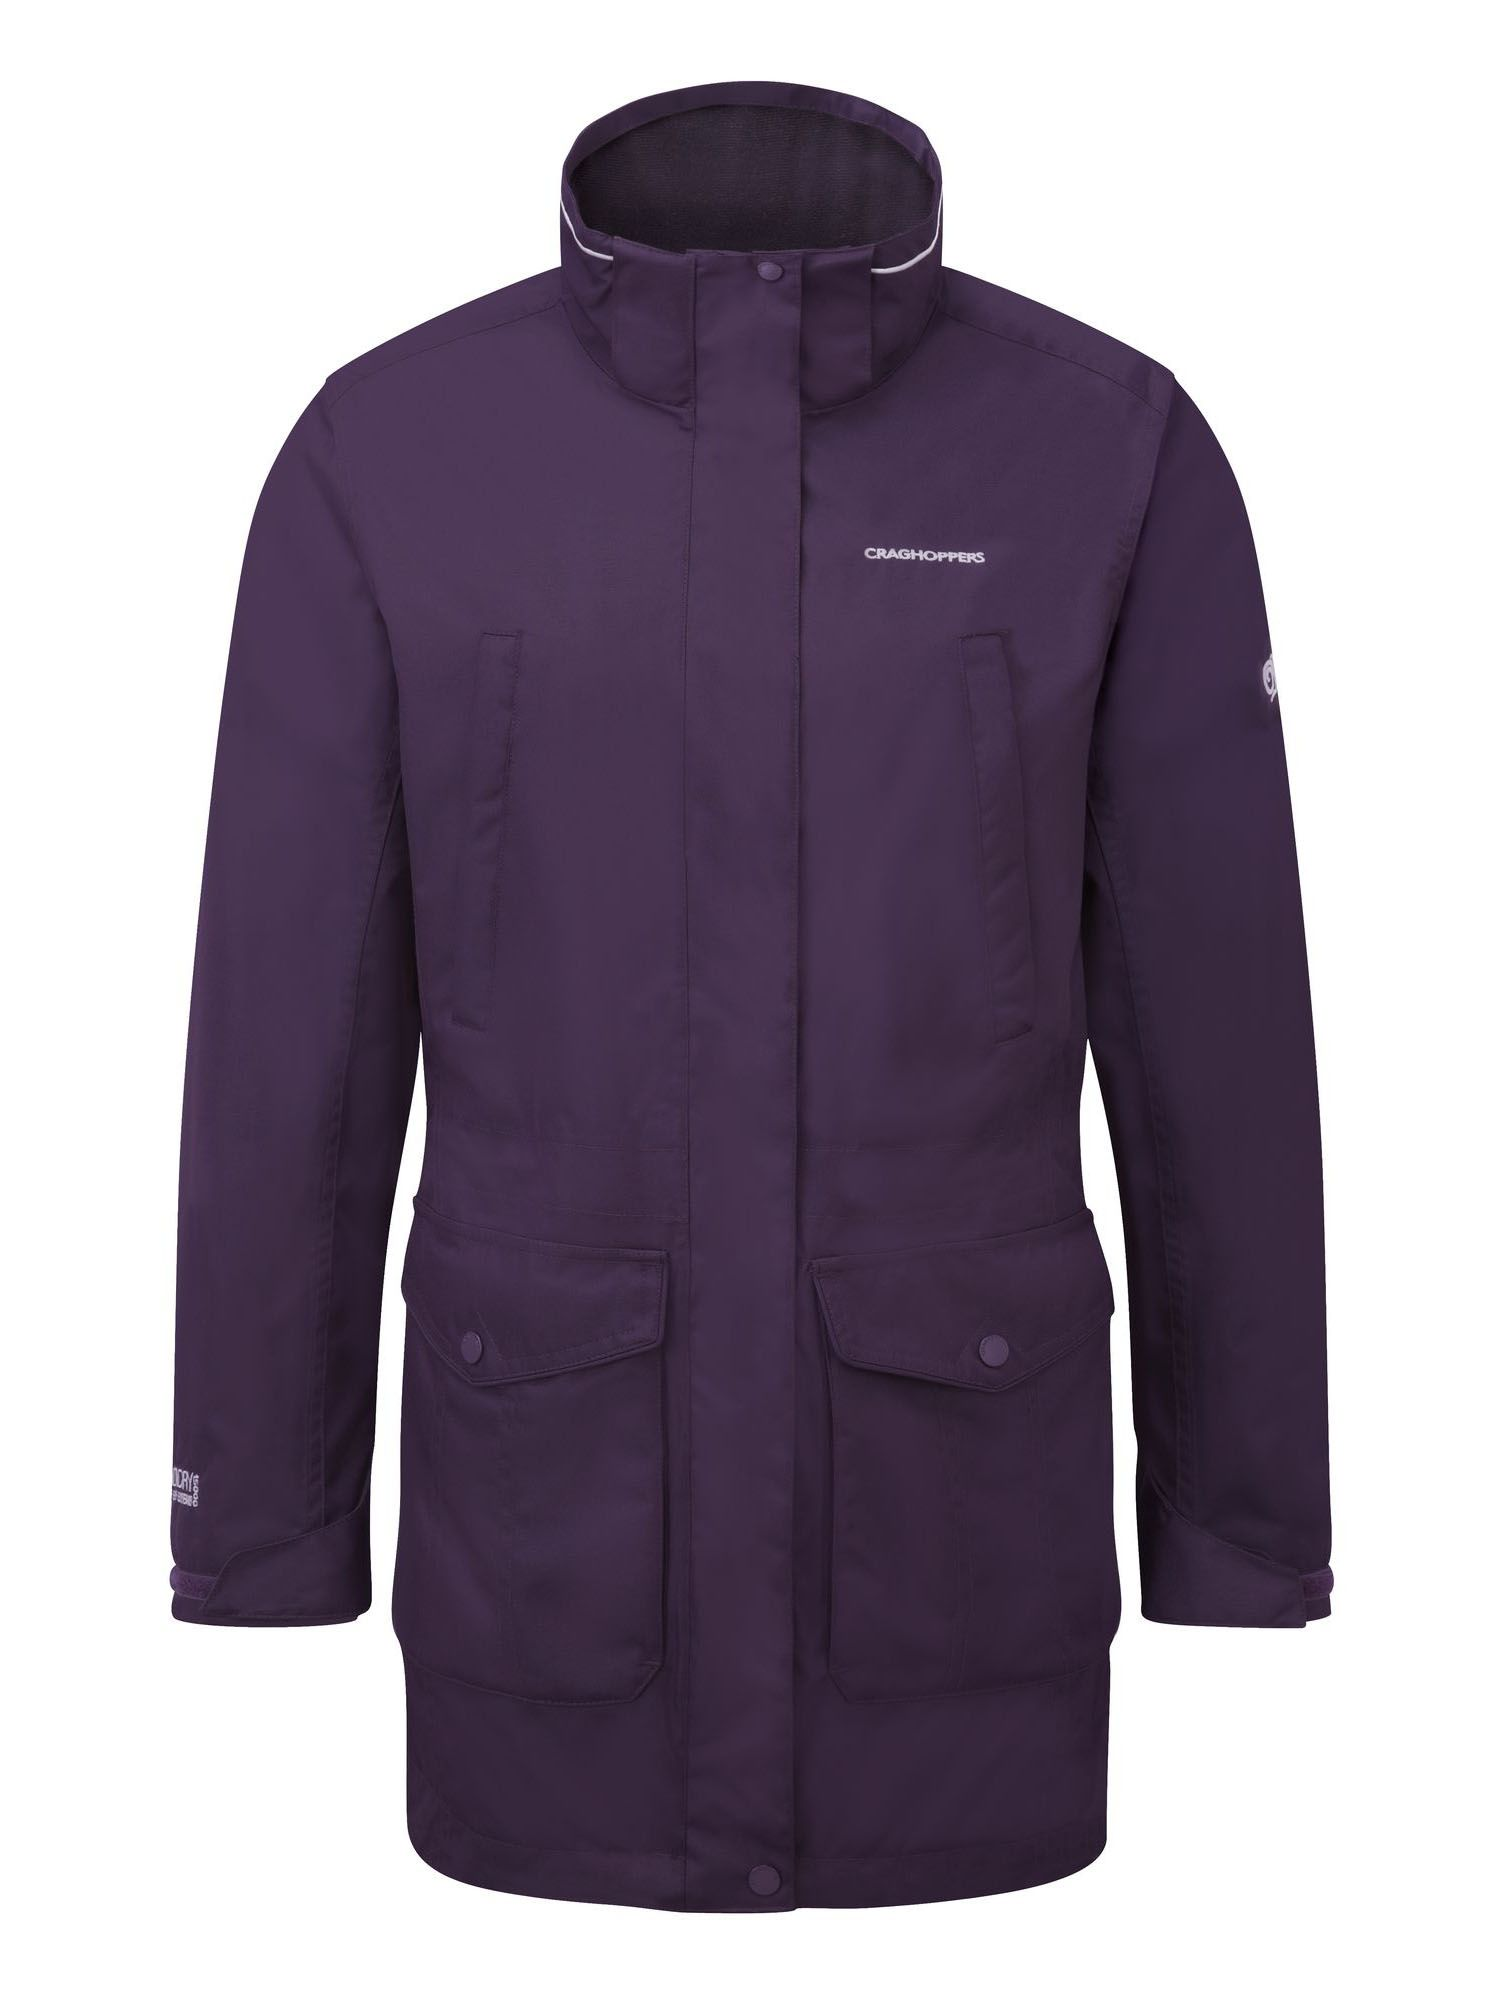 Craghoppers Madigan III Long Waterproof Jacket, Dark Purple